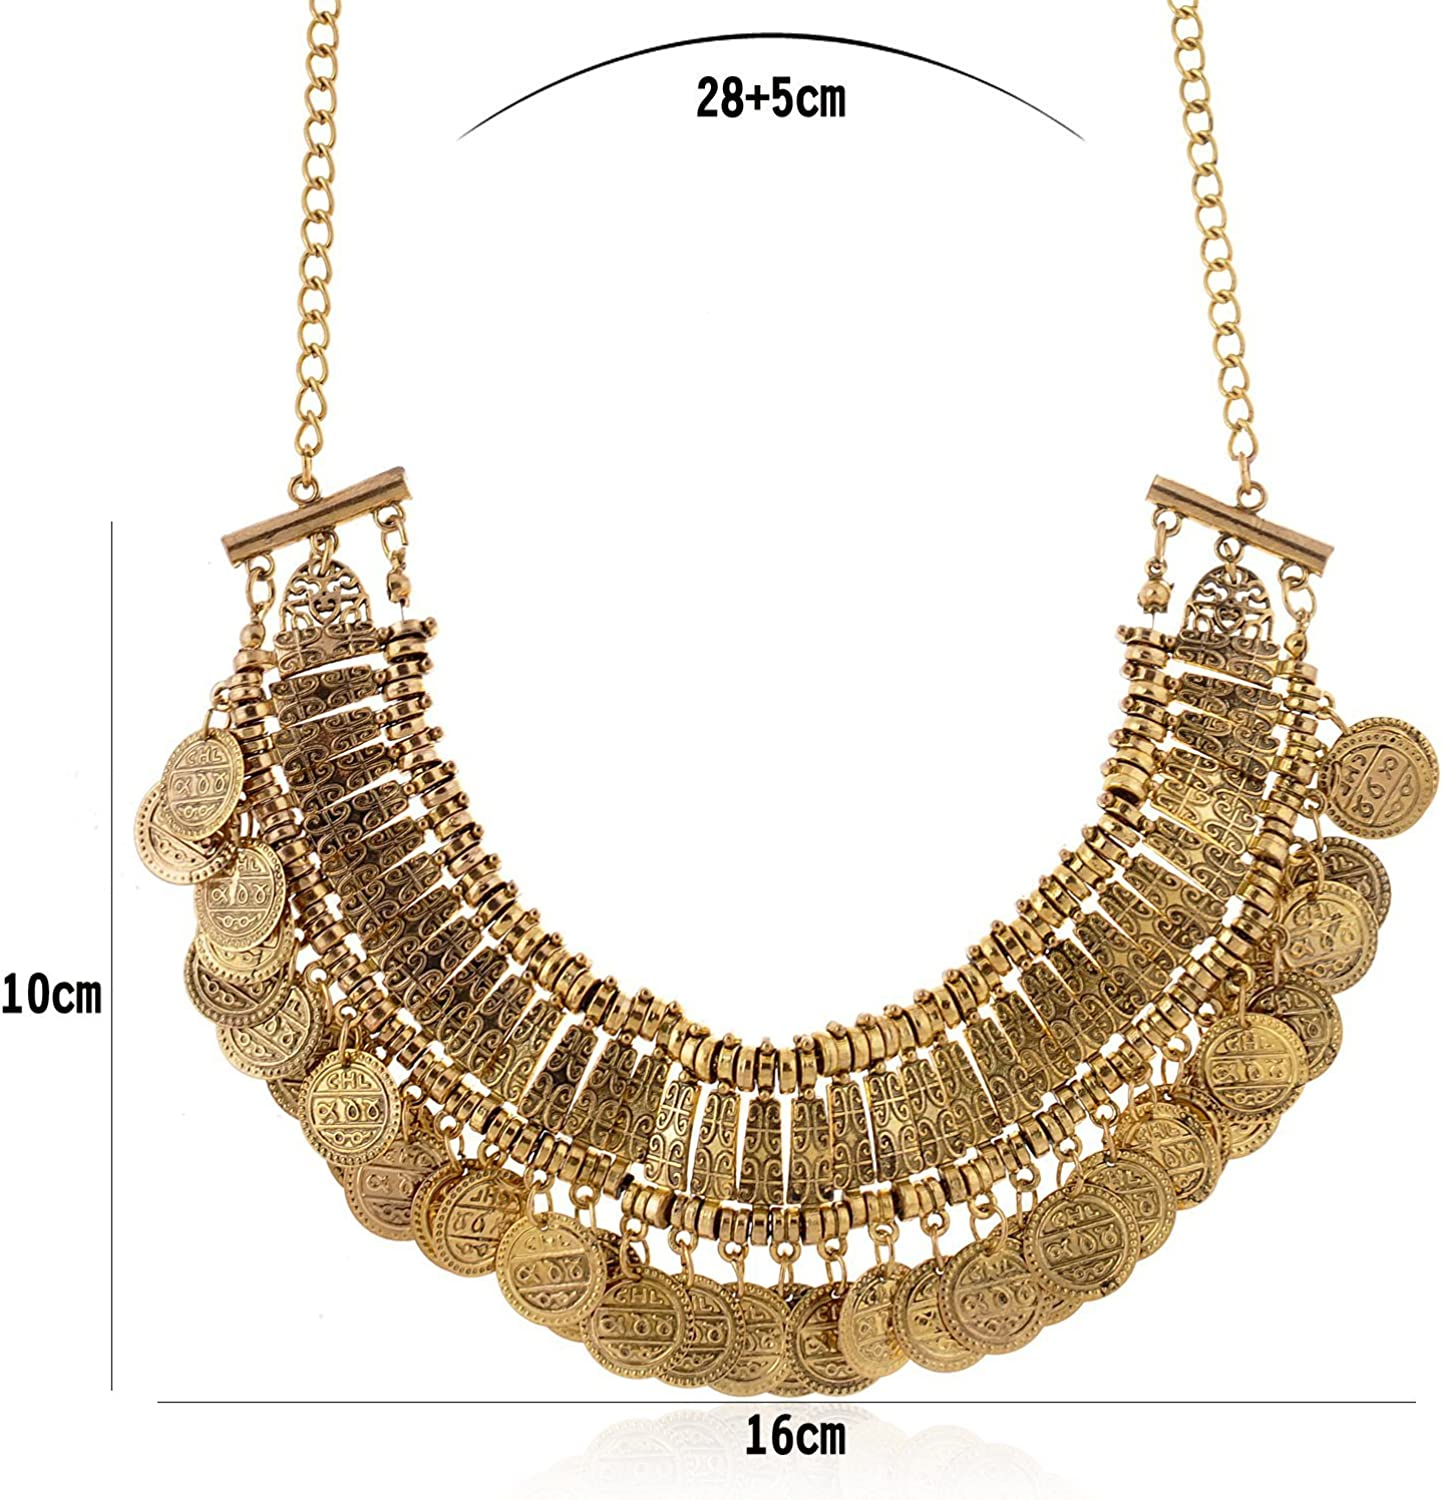 Pendant Tribal Long Chain Ethnic Boho Coin Clavicle Tassel Jewelry Necklace